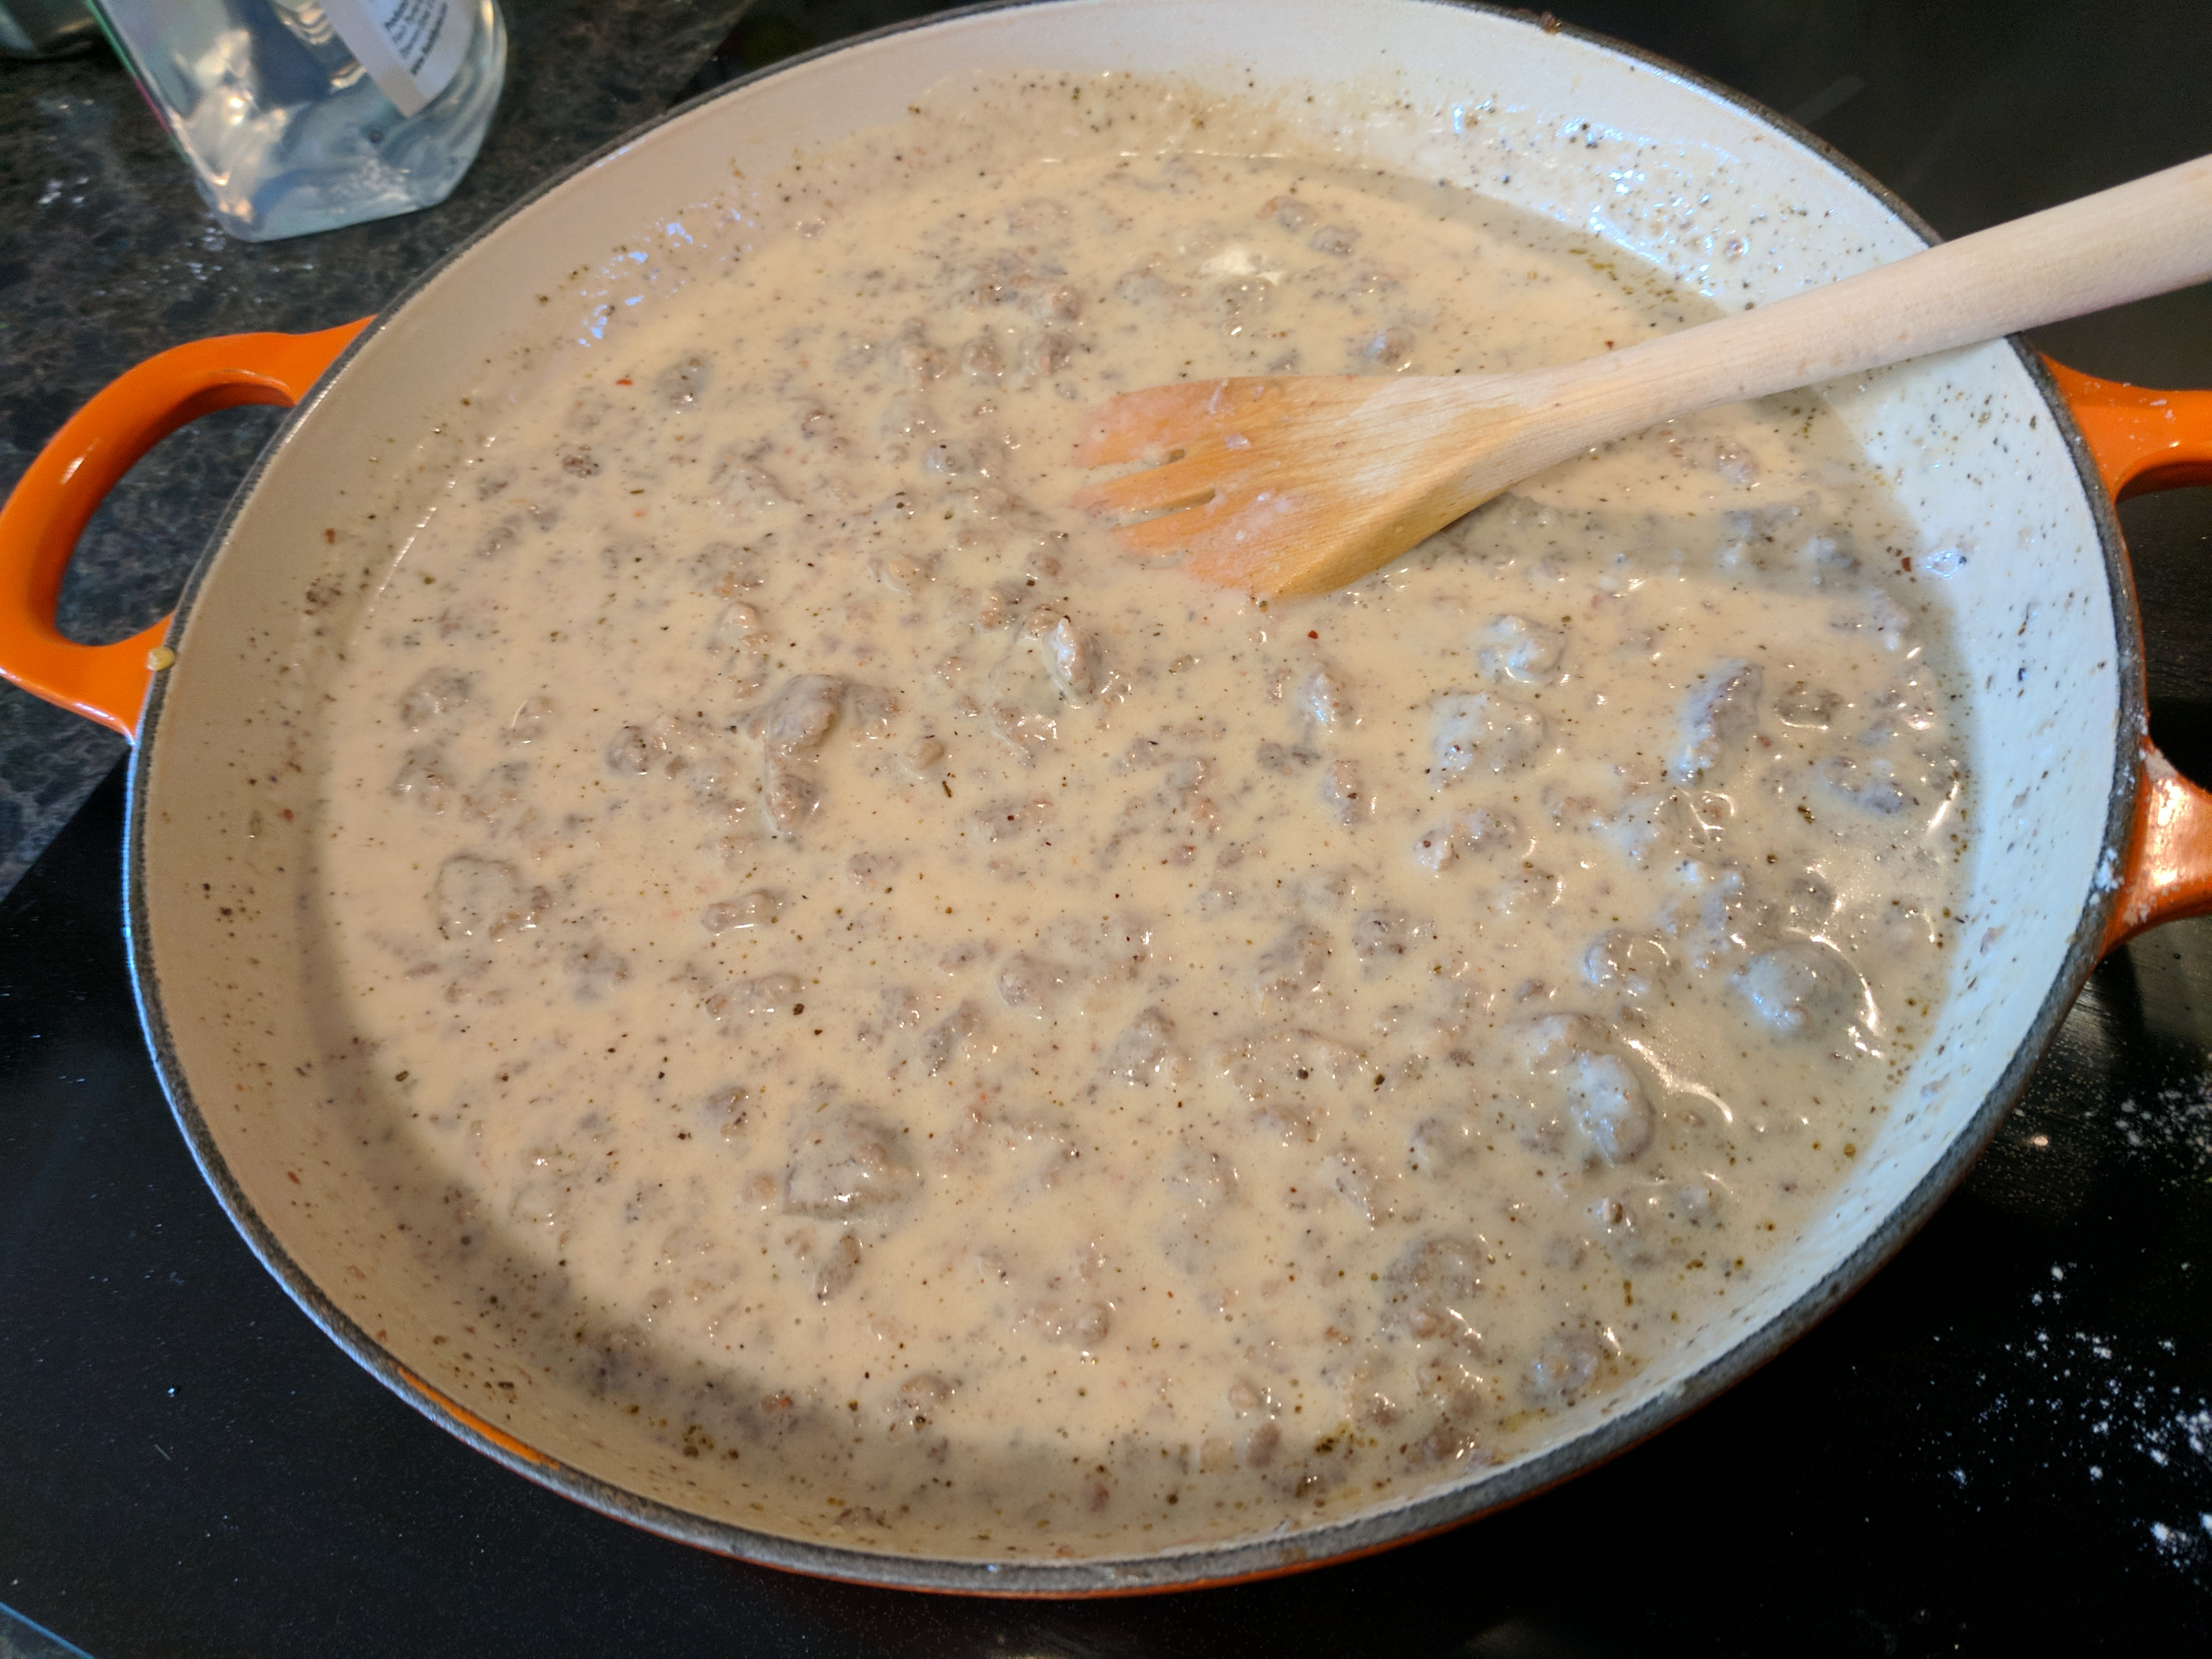 Best friend biscuits and gravy foodie collaborative - Cuisine collaborative ...